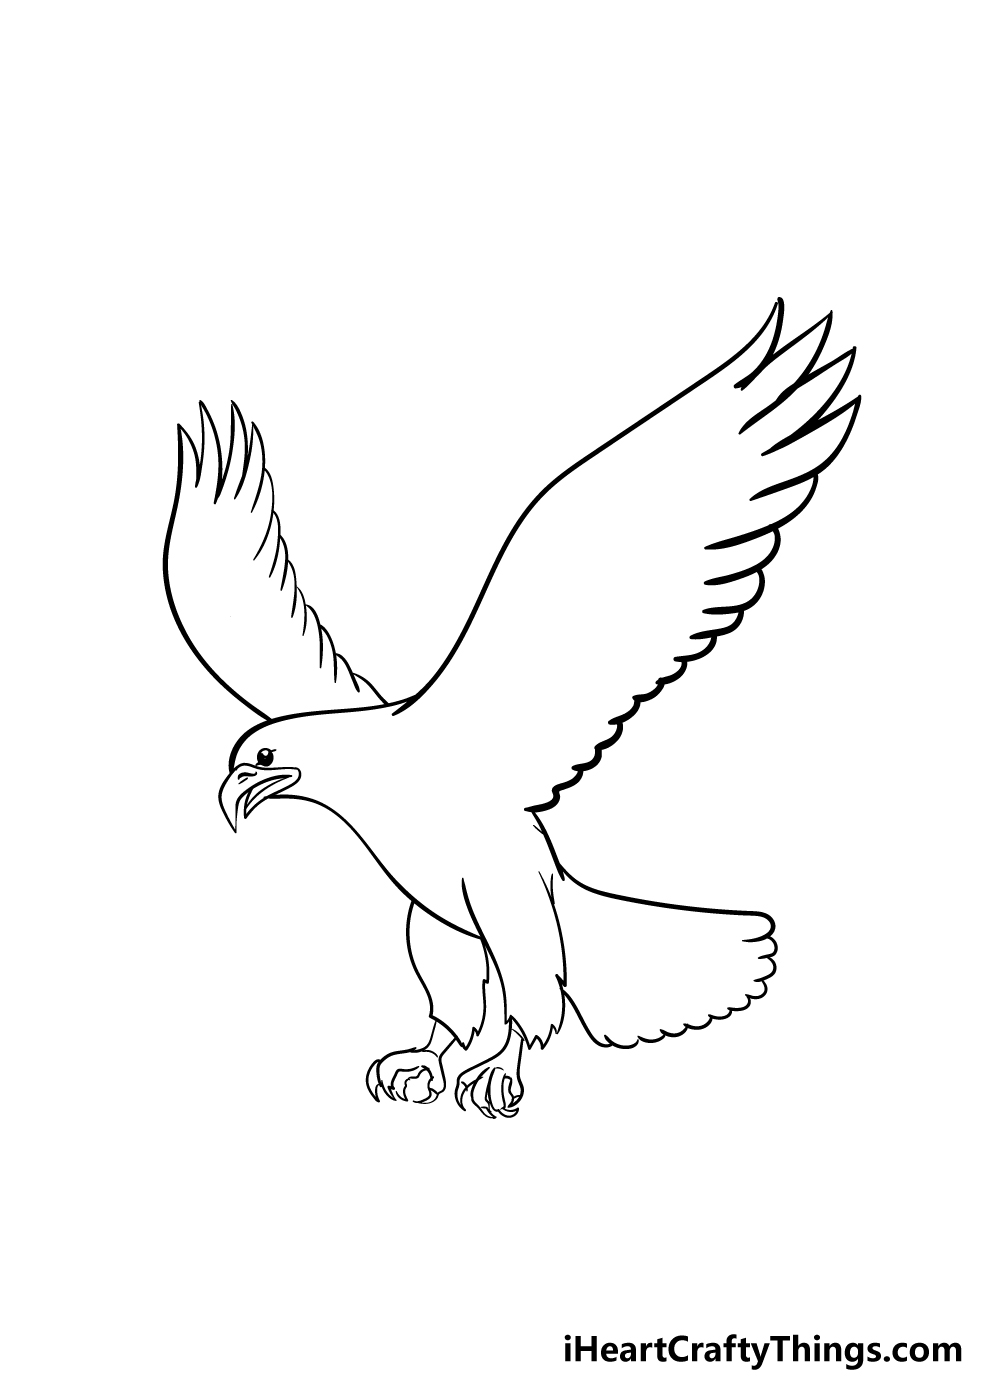 eagle drawing step 5